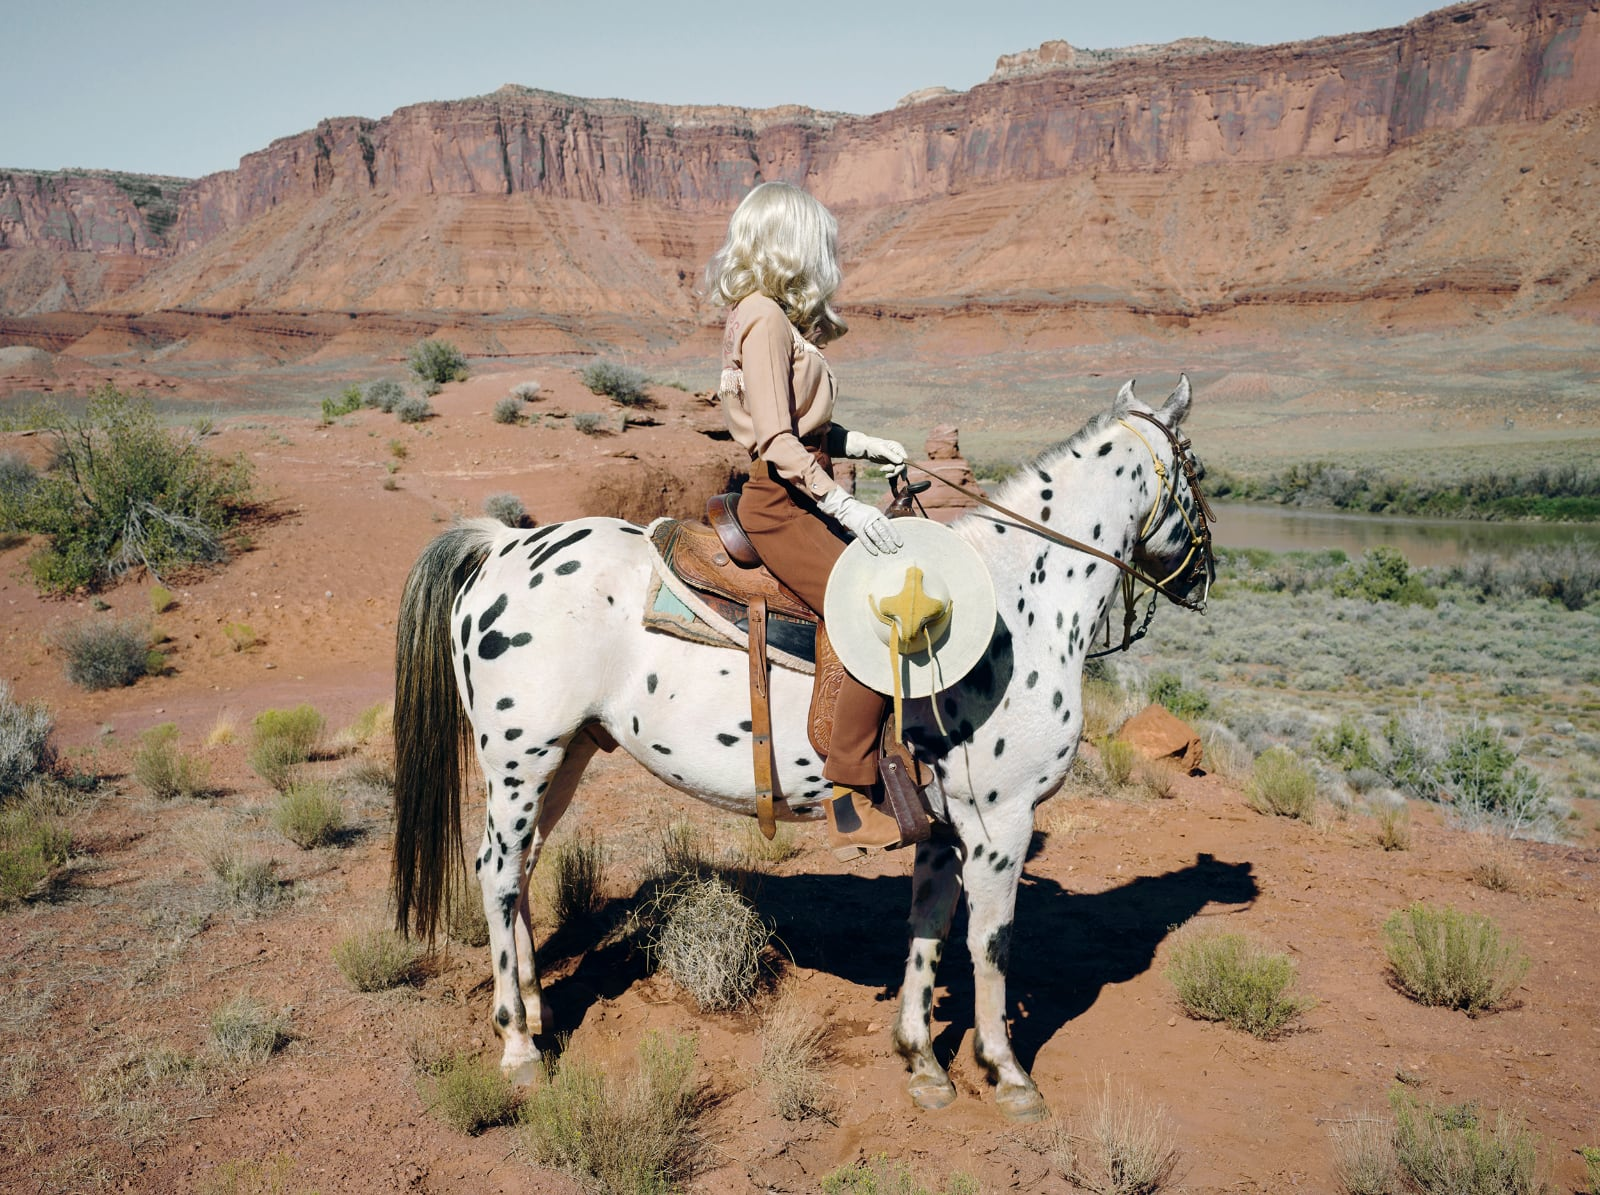 © Anja Niemi - The Imaginary Cowboy